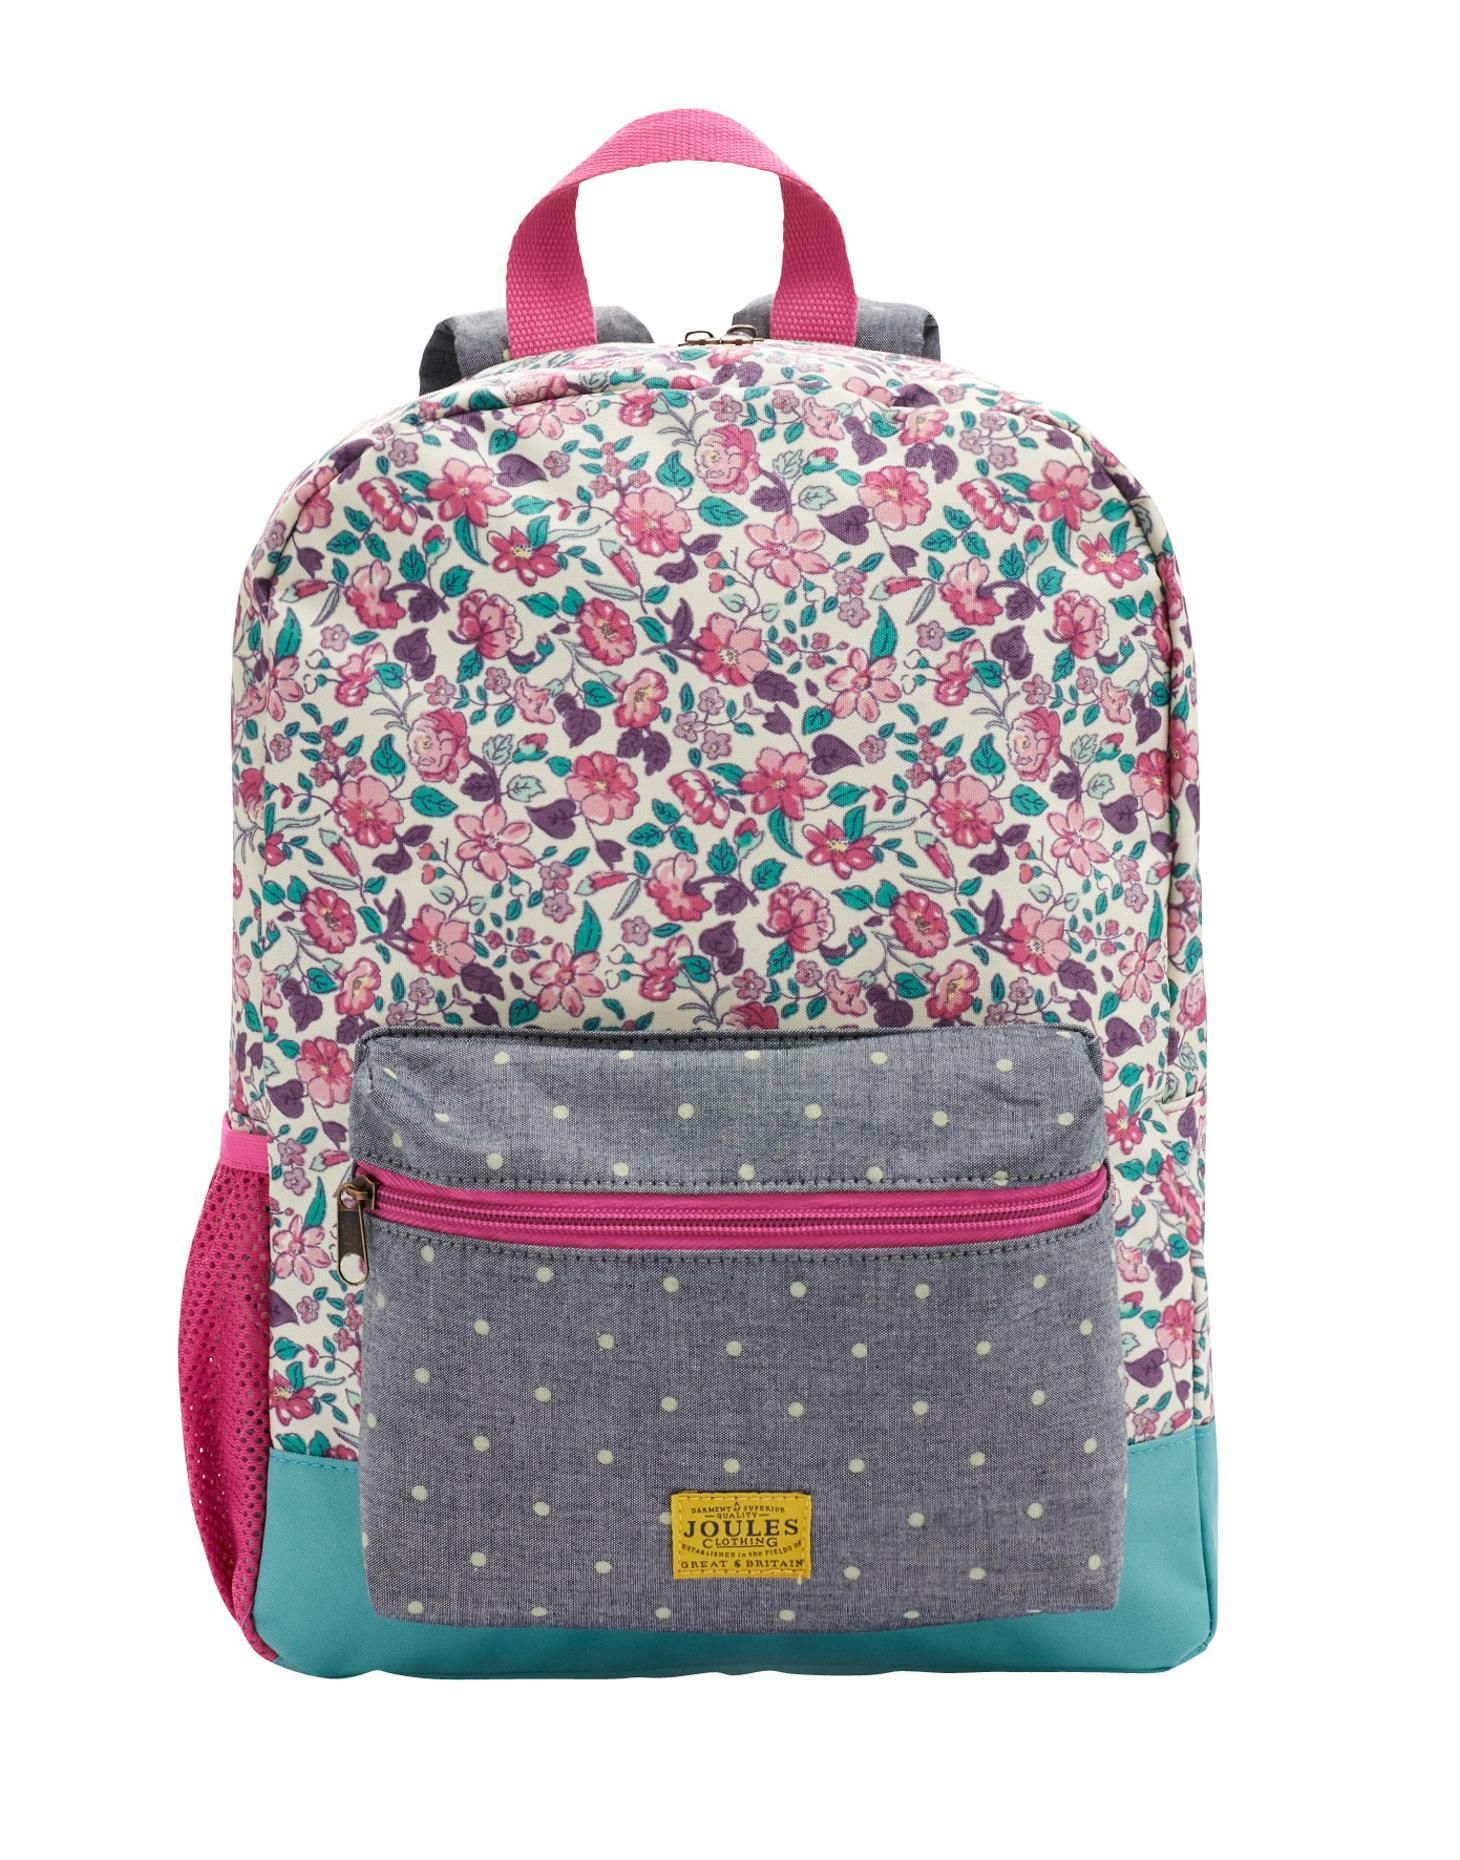 Check out our Backpack Buying Guide to see what backpack types and features are best for you. Try the Backpack Buying Guide Kenox Girl's School Rucksack College Bookbag Lady Travel Backpack 14Inch Laptop Bag (Floral).